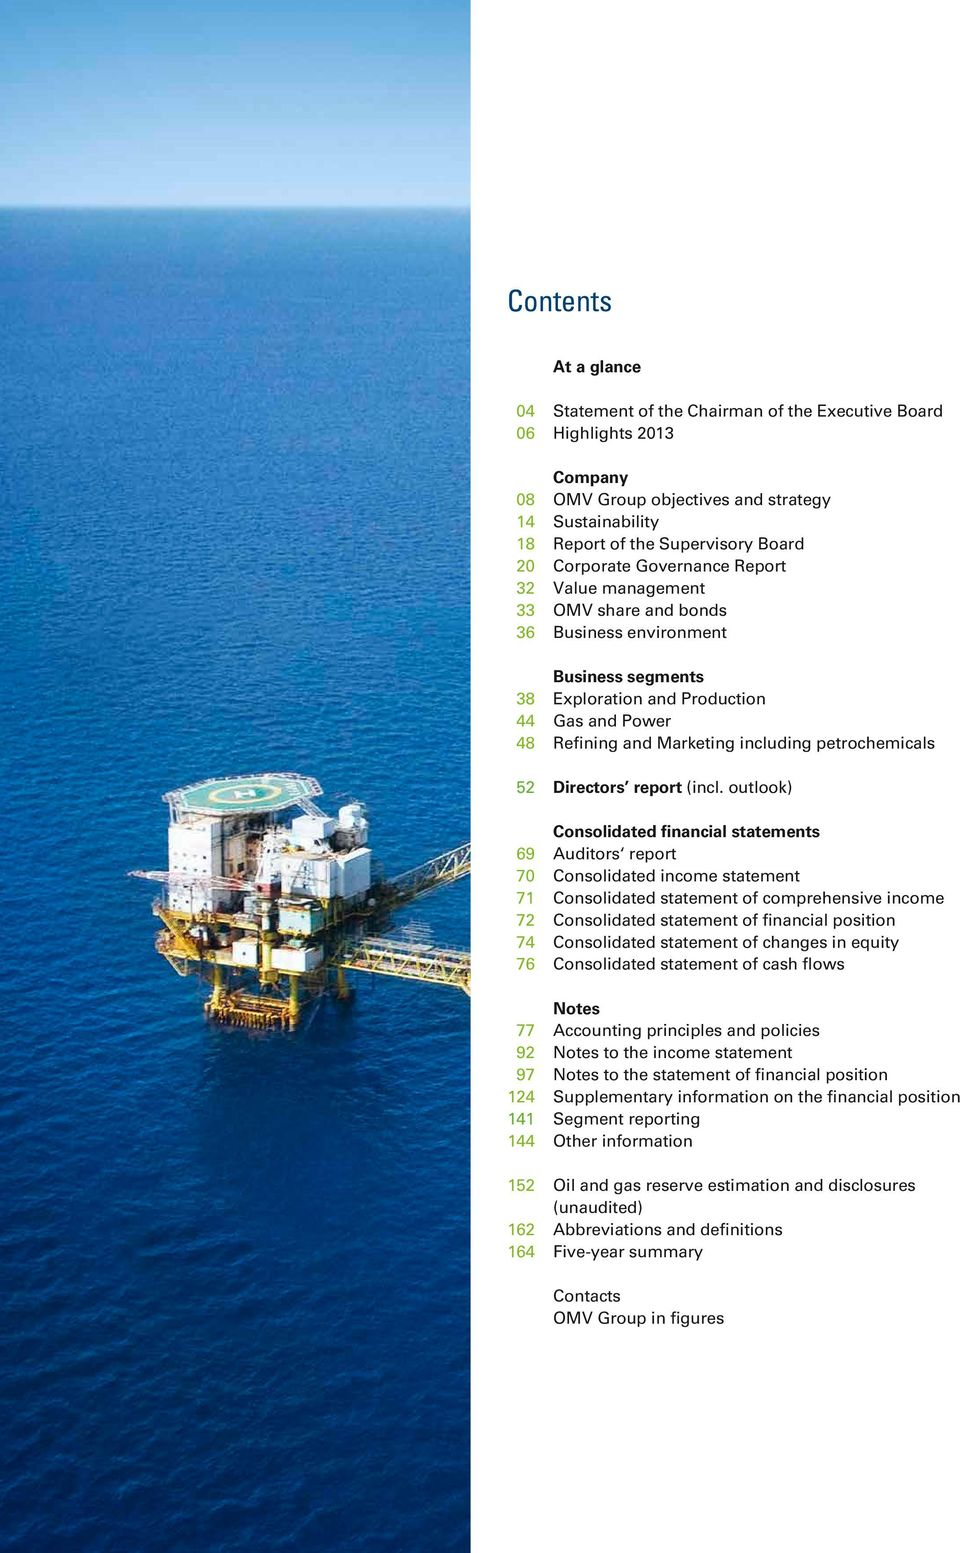 petrochemicals 52 Directors report (incl.